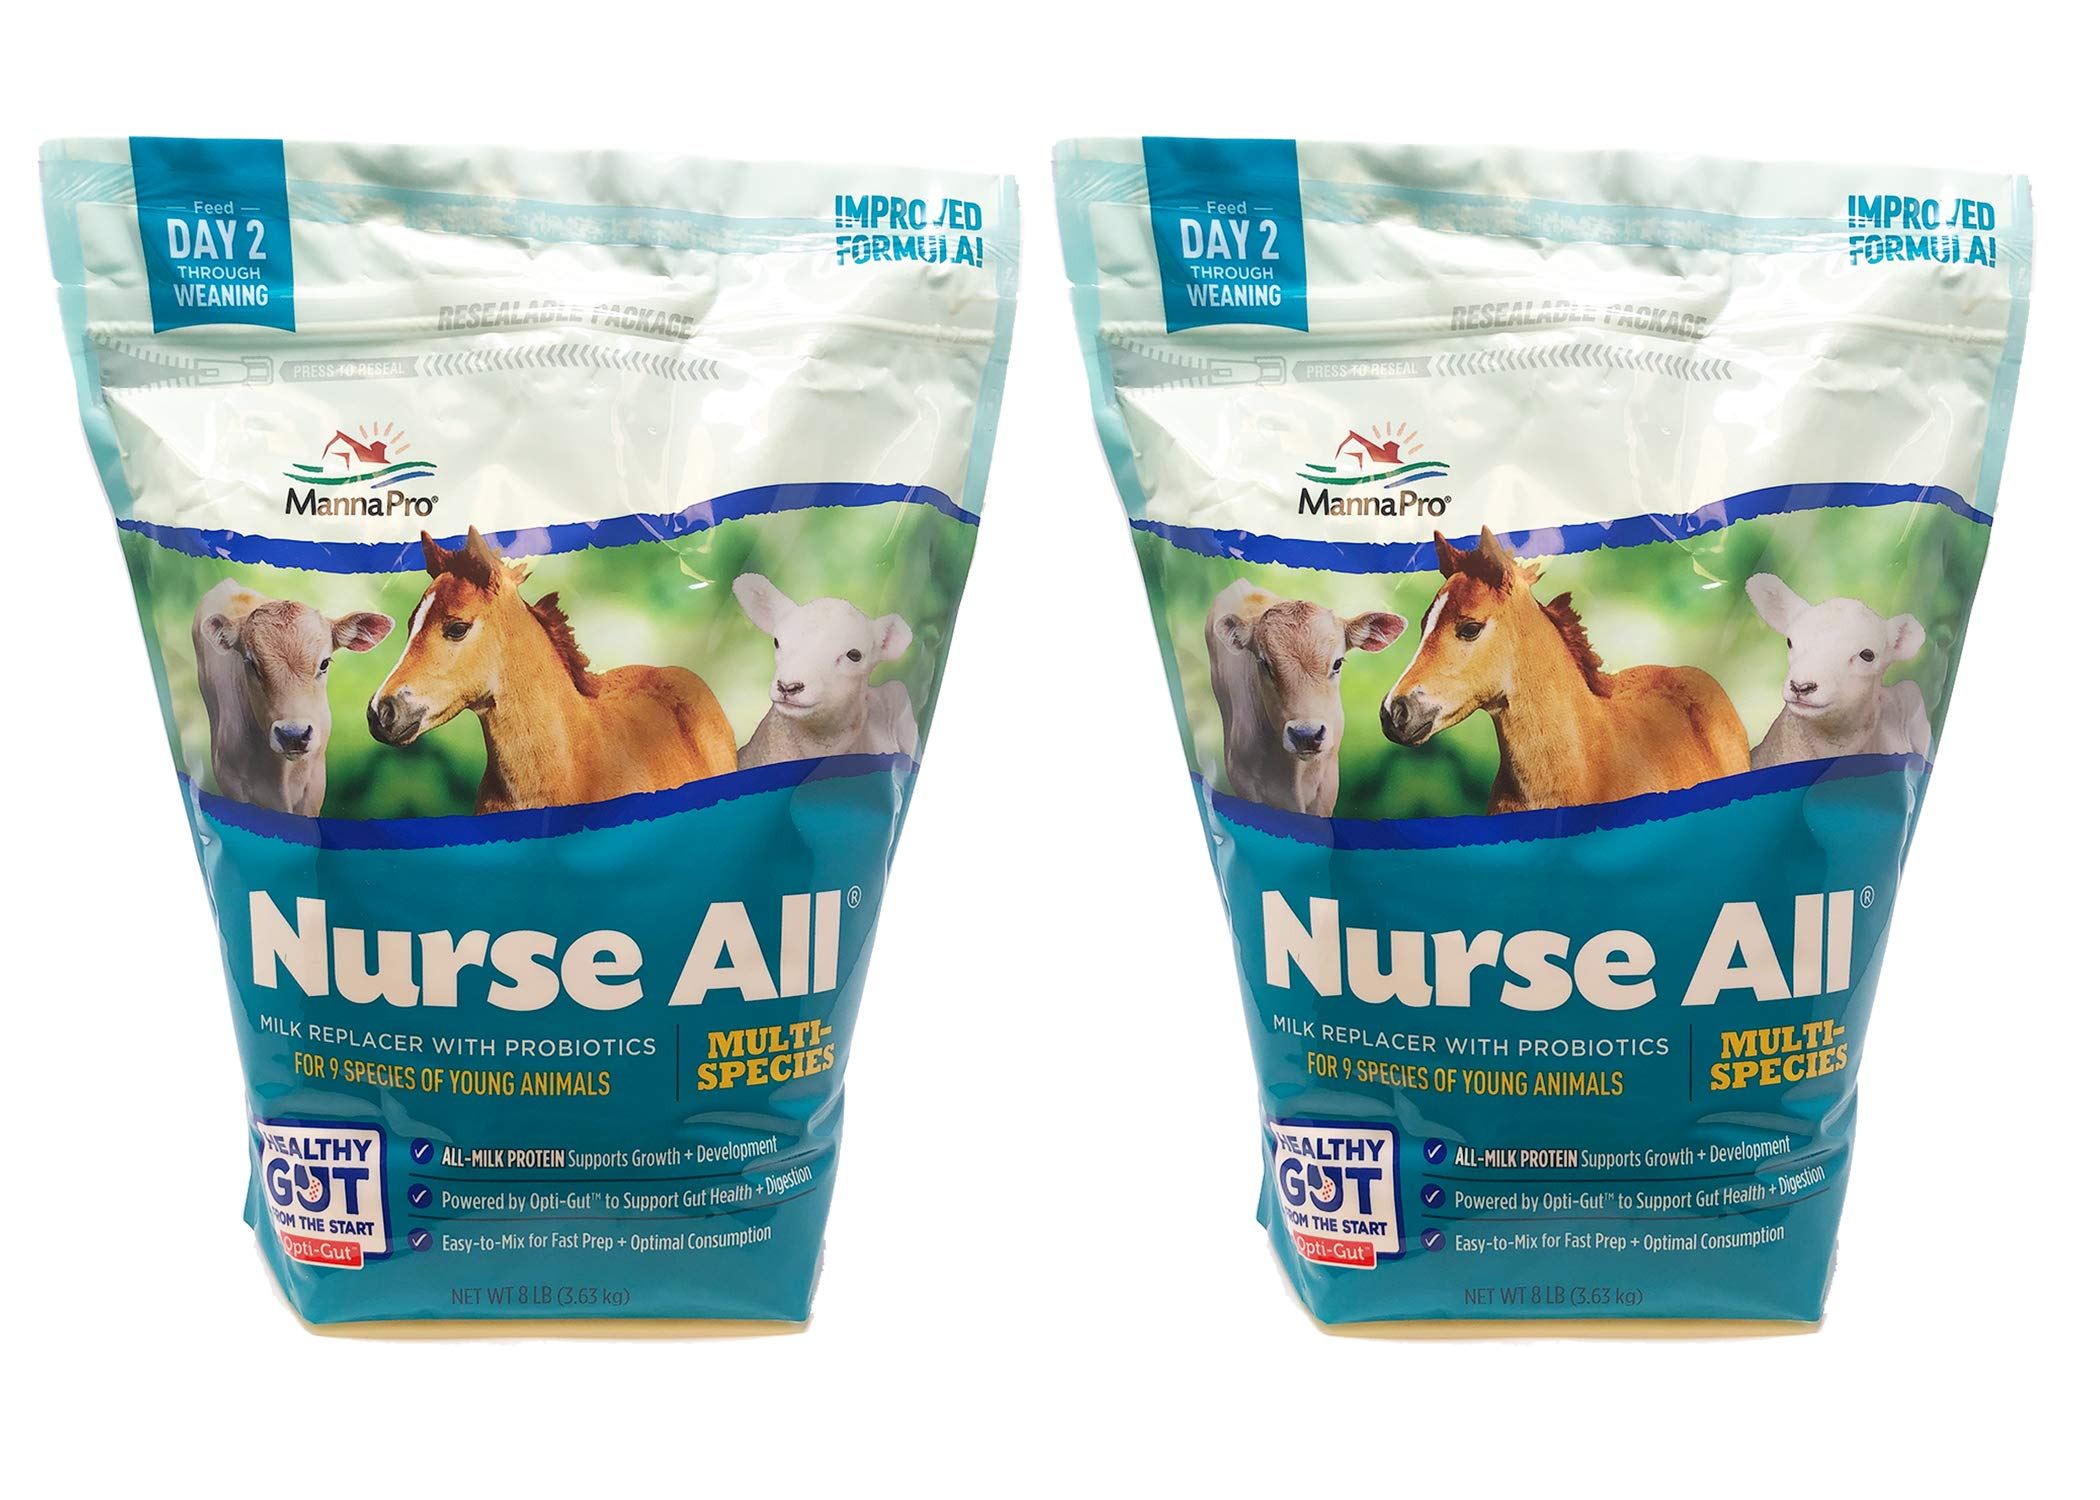 Manna Pro NurseAll Non-Medicated Milk Replacer, 8 lb (Pack of 2) by Manna Pro